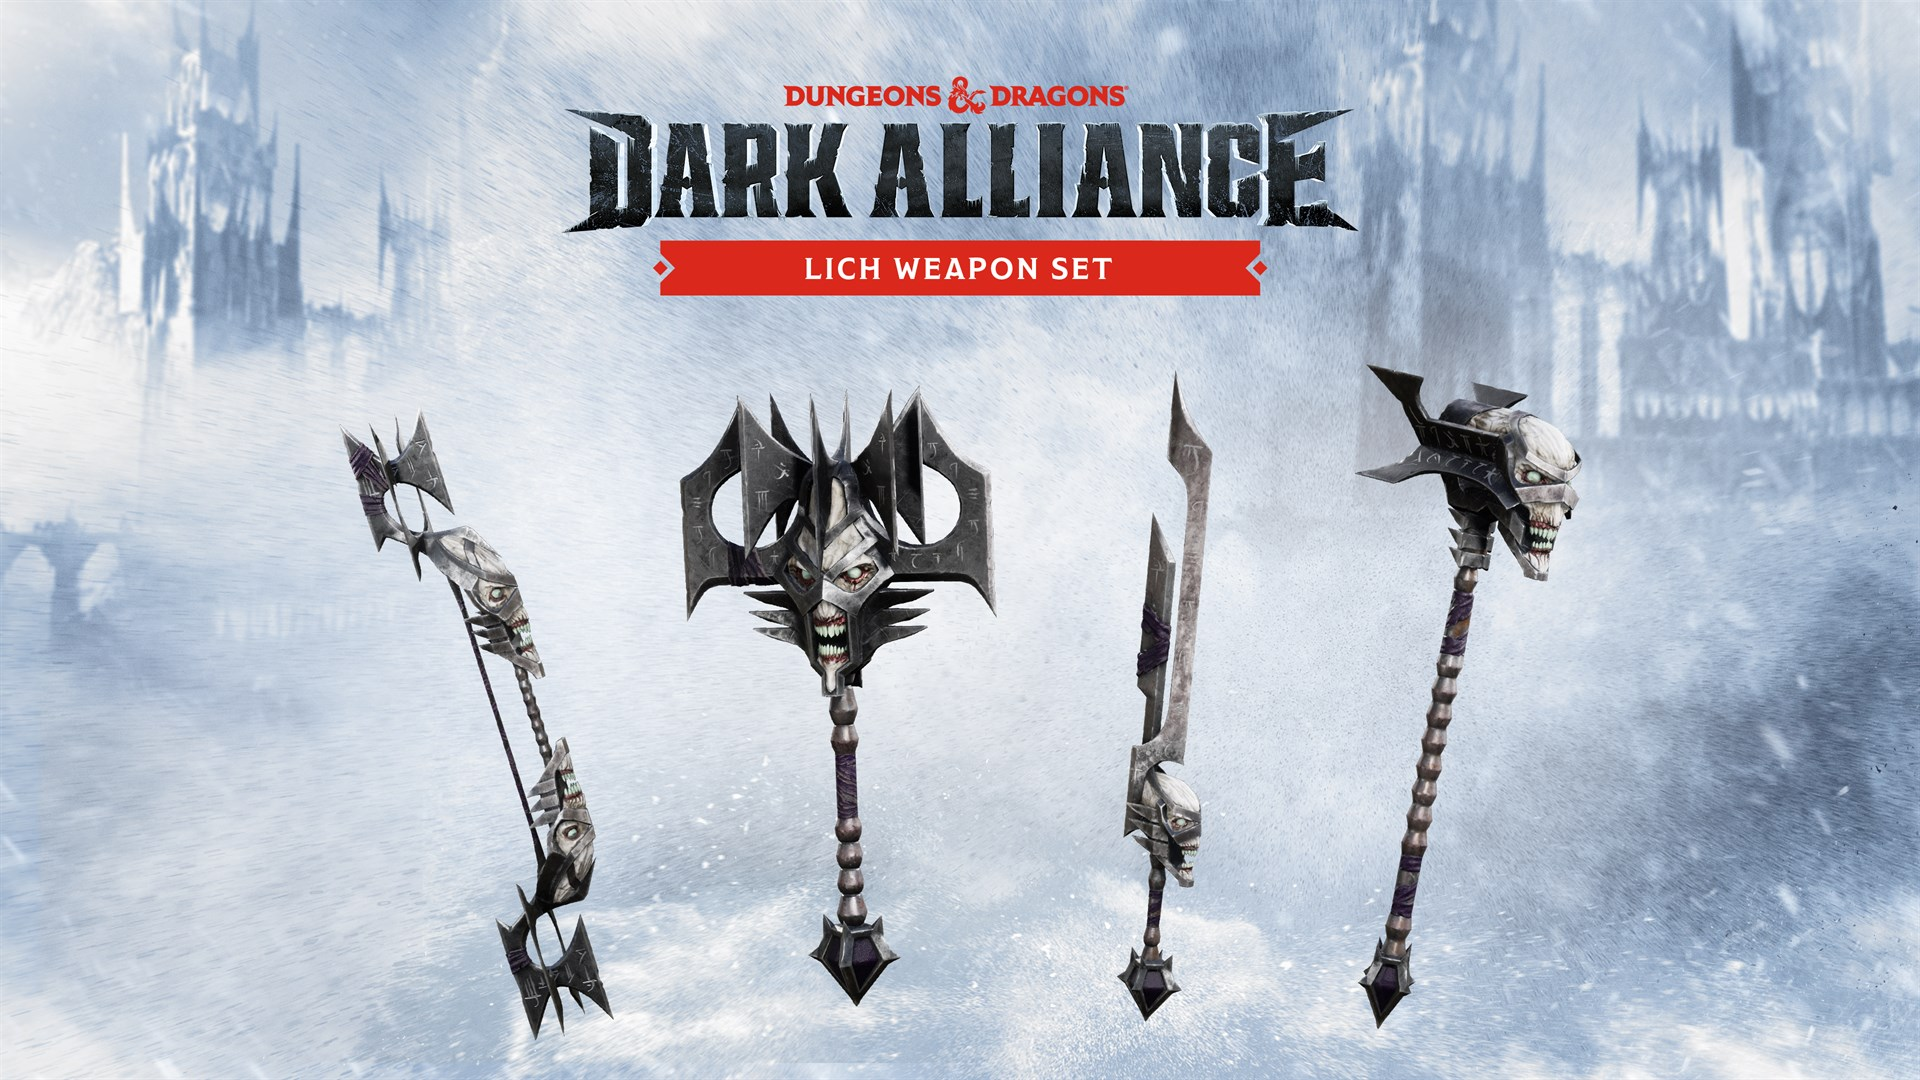 The Lich Weapon Set